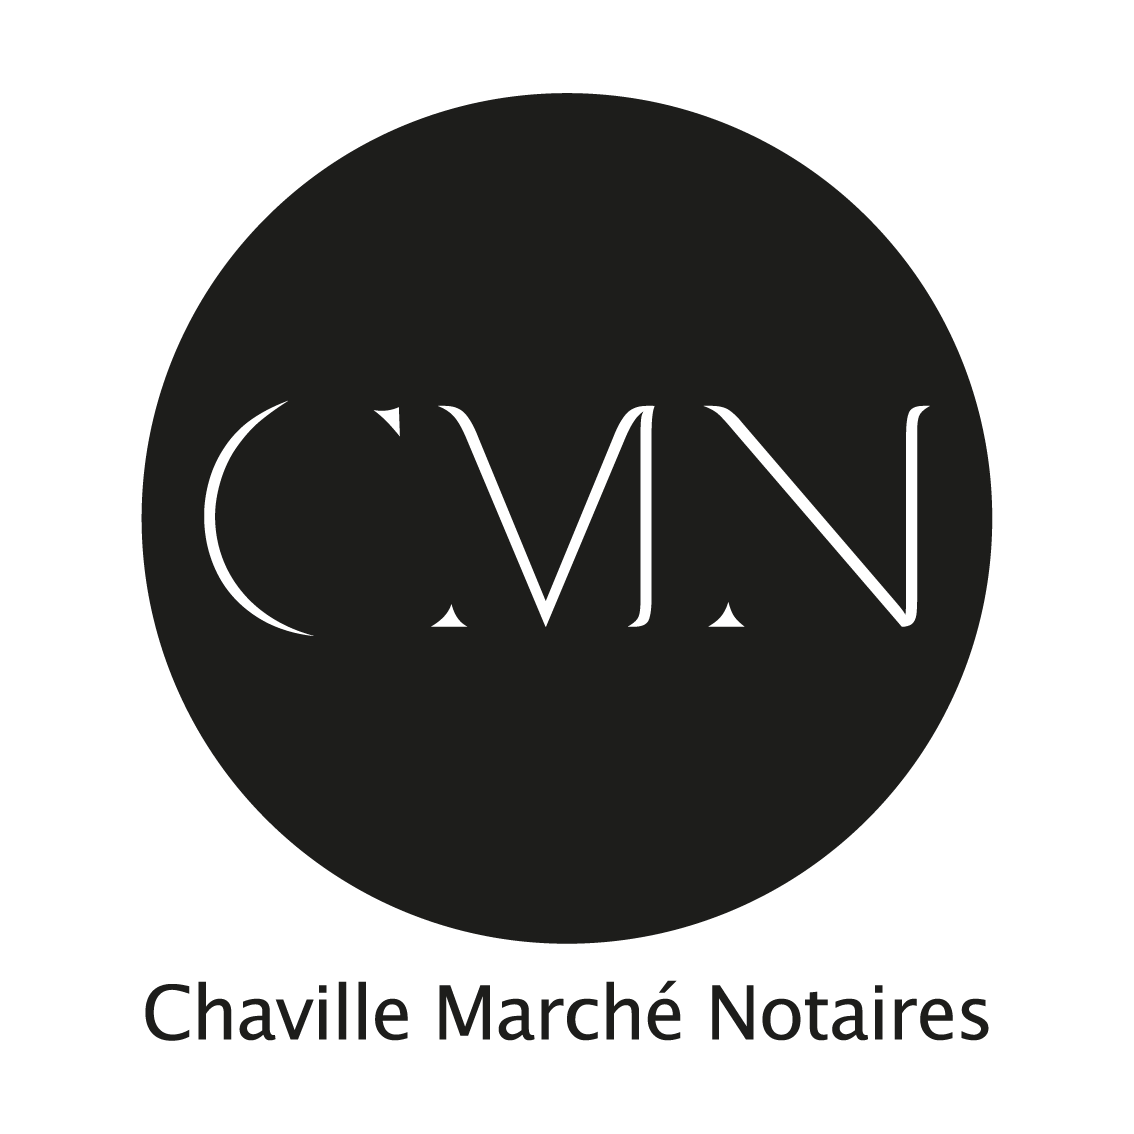 Chaville Marché Notaires